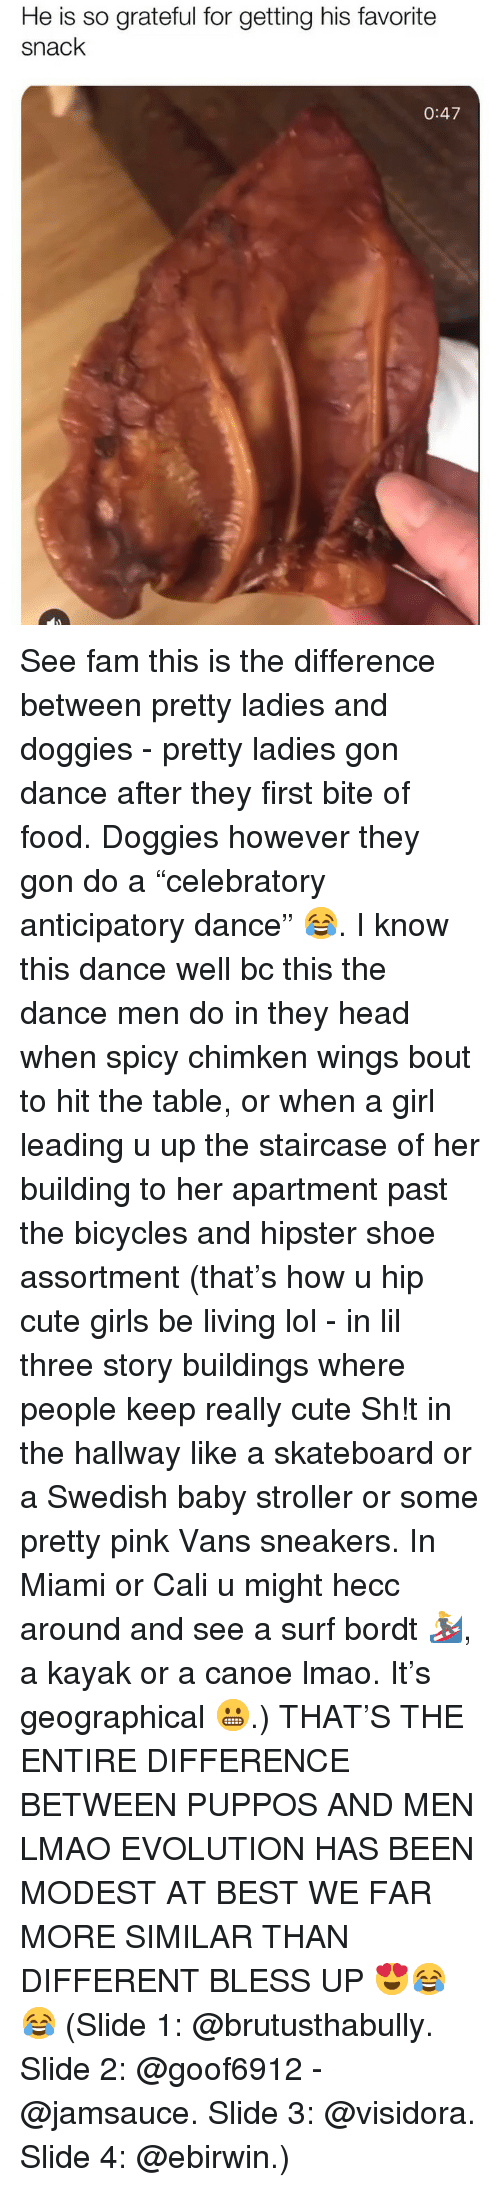 """Bless Up, Cute, and Fam: He is so grateful for getting his favorite  snack  0:47 See fam this is the difference between pretty ladies and doggies - pretty ladies gon dance after they first bite of food. Doggies however they gon do a """"celebratory anticipatory dance"""" 😂. I know this dance well bc this the dance men do in they head when spicy chimken wings bout to hit the table, or when a girl leading u up the staircase of her building to her apartment past the bicycles and hipster shoe assortment (that's how u hip cute girls be living lol - in lil three story buildings where people keep really cute Sh!t in the hallway like a skateboard or a Swedish baby stroller or some pretty pink Vans sneakers. In Miami or Cali u might hecc around and see a surf bordt 🏄♀️, a kayak or a canoe lmao. It's geographical 😬.) THAT'S THE ENTIRE DIFFERENCE BETWEEN PUPPOS AND MEN LMAO EVOLUTION HAS BEEN MODEST AT BEST WE FAR MORE SIMILAR THAN DIFFERENT BLESS UP 😍😂😂 (Slide 1: @brutusthabully. Slide 2: @goof6912 - @jamsauce. Slide 3: @visidora. Slide 4: @ebirwin.)"""